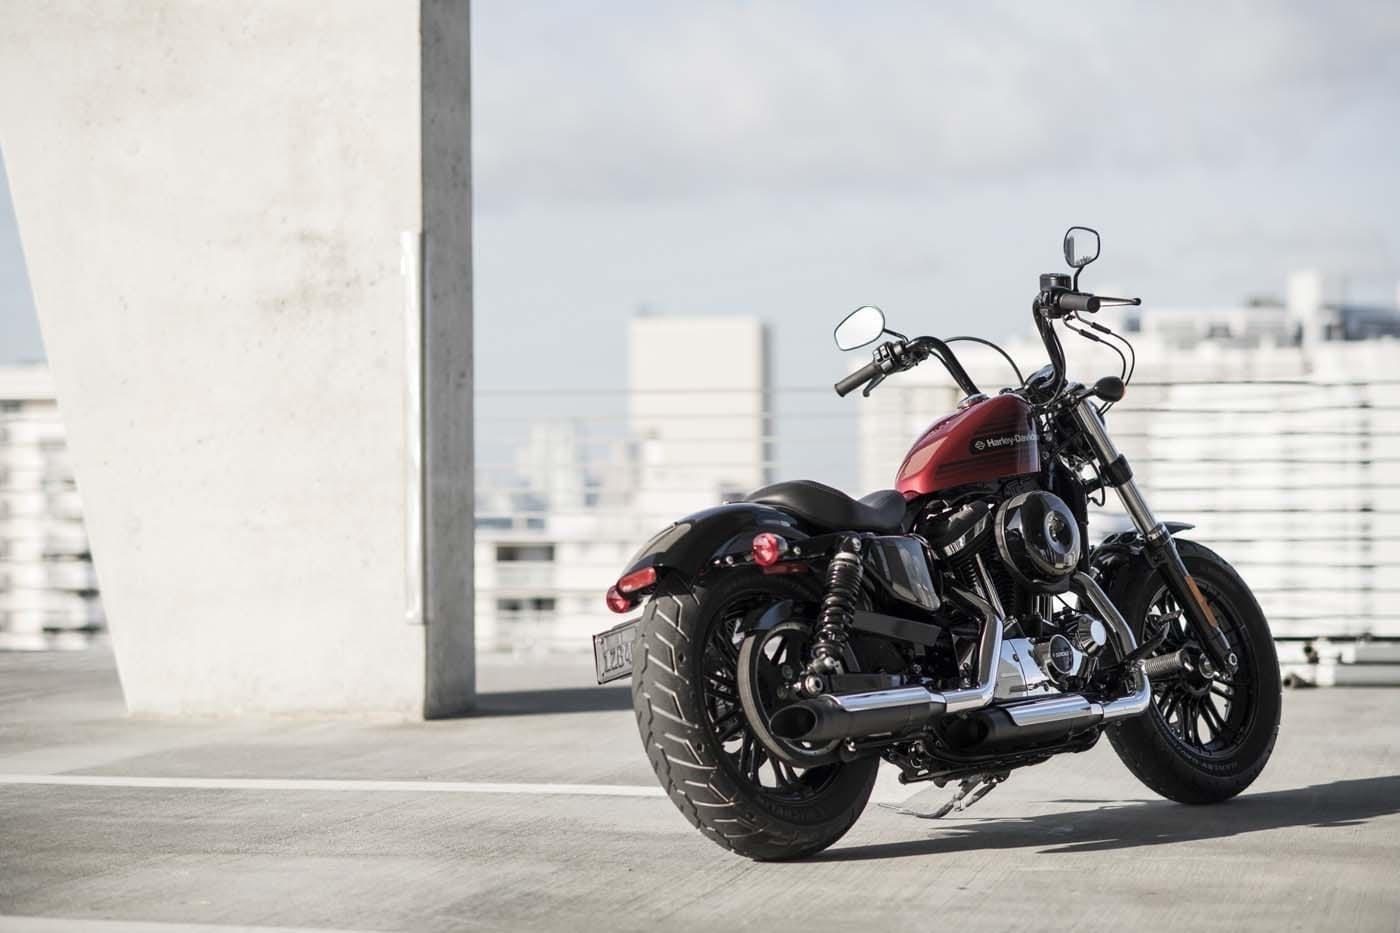 HARLEY-DAVIDSON FORTY-EIGHT SPECIAL AND IRON 1200 SPORTSTERS 29